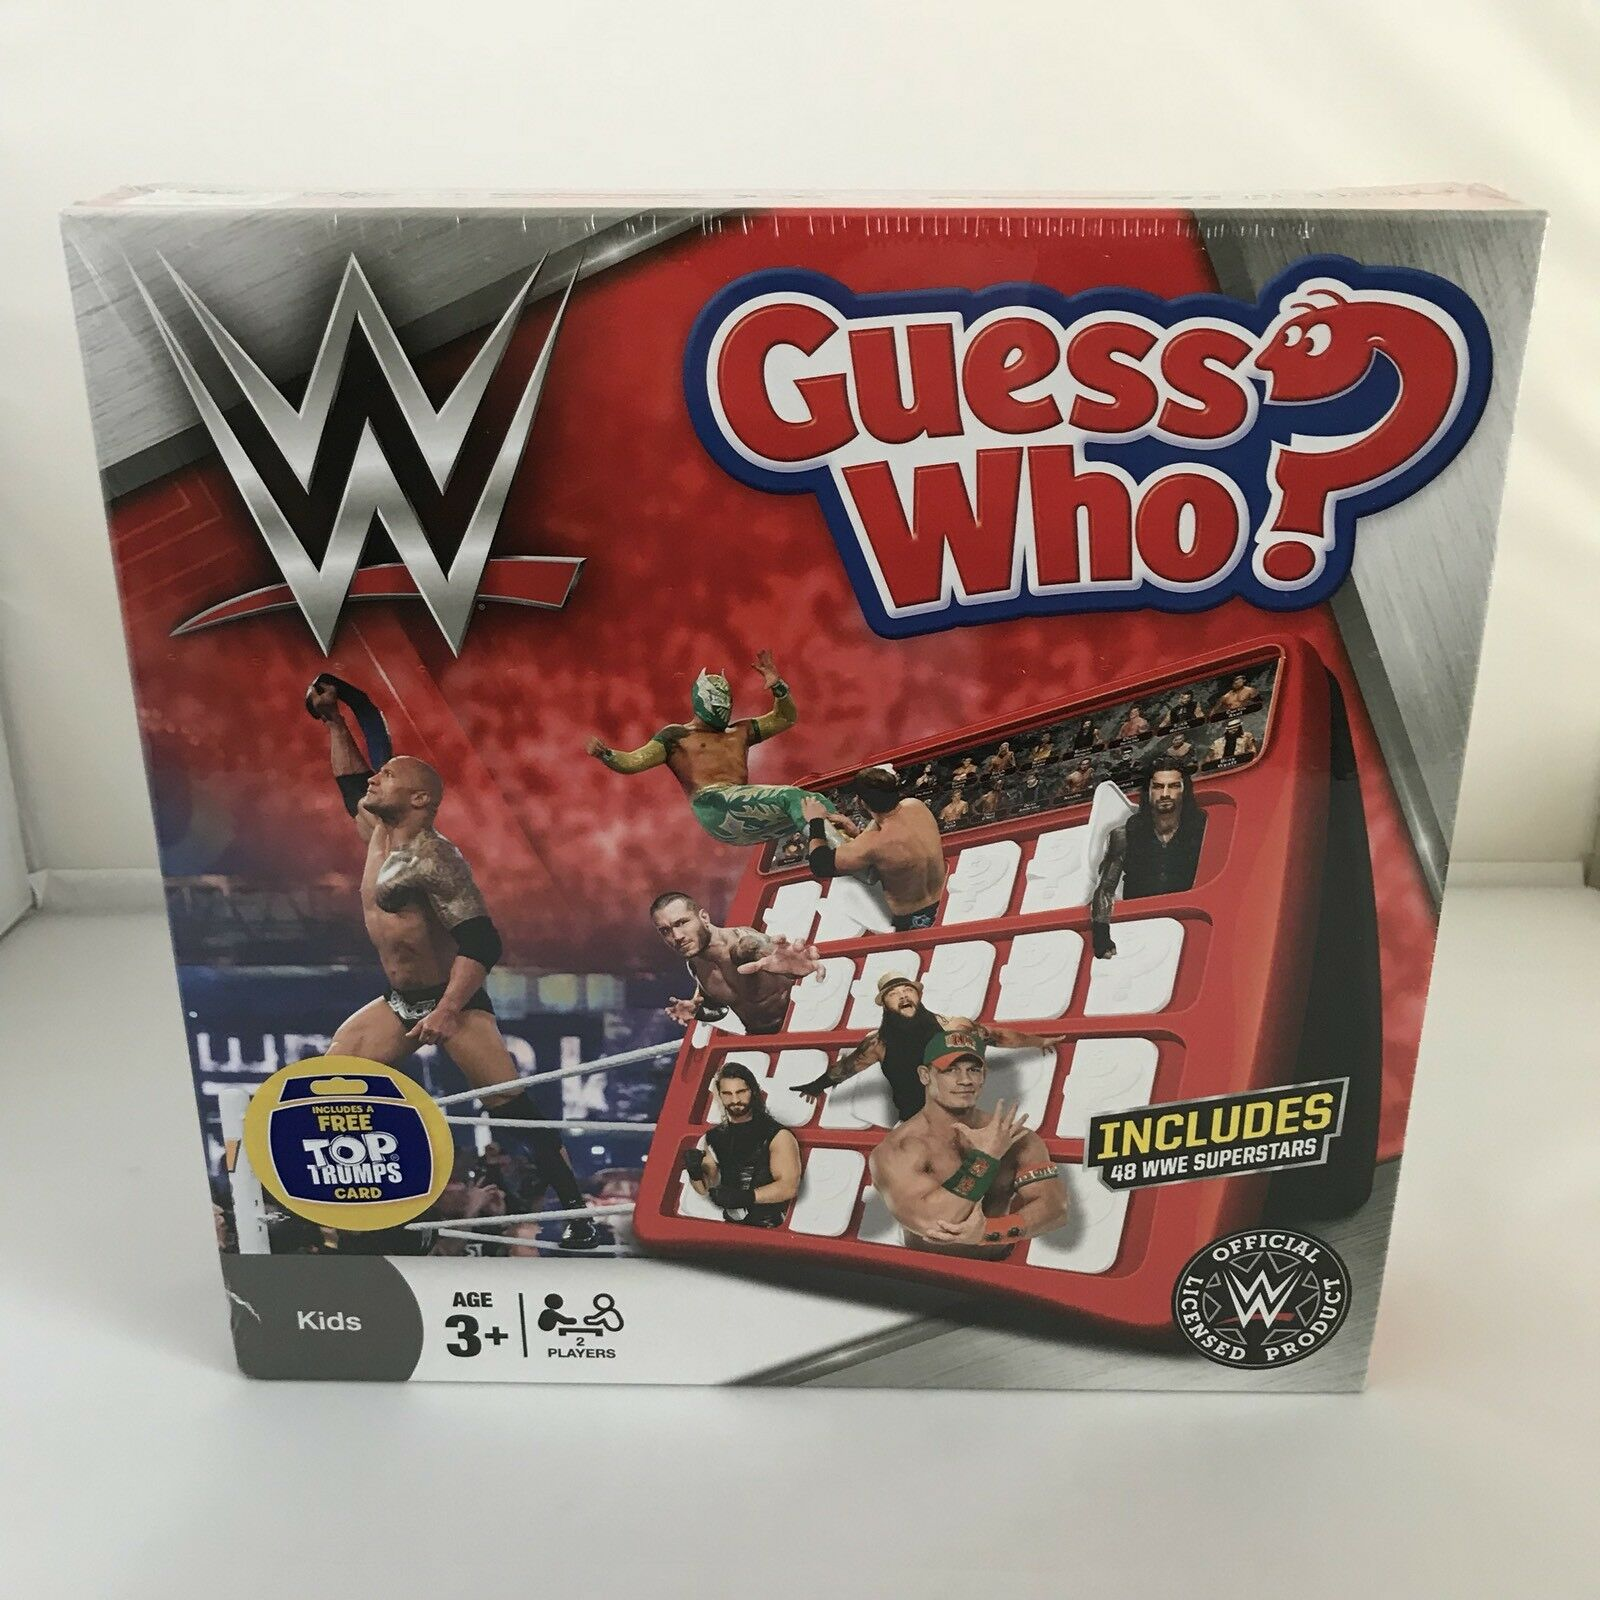 New & Sealed Official WWE Guess Who Game 48 WWE Superstars BOX DAMAGE